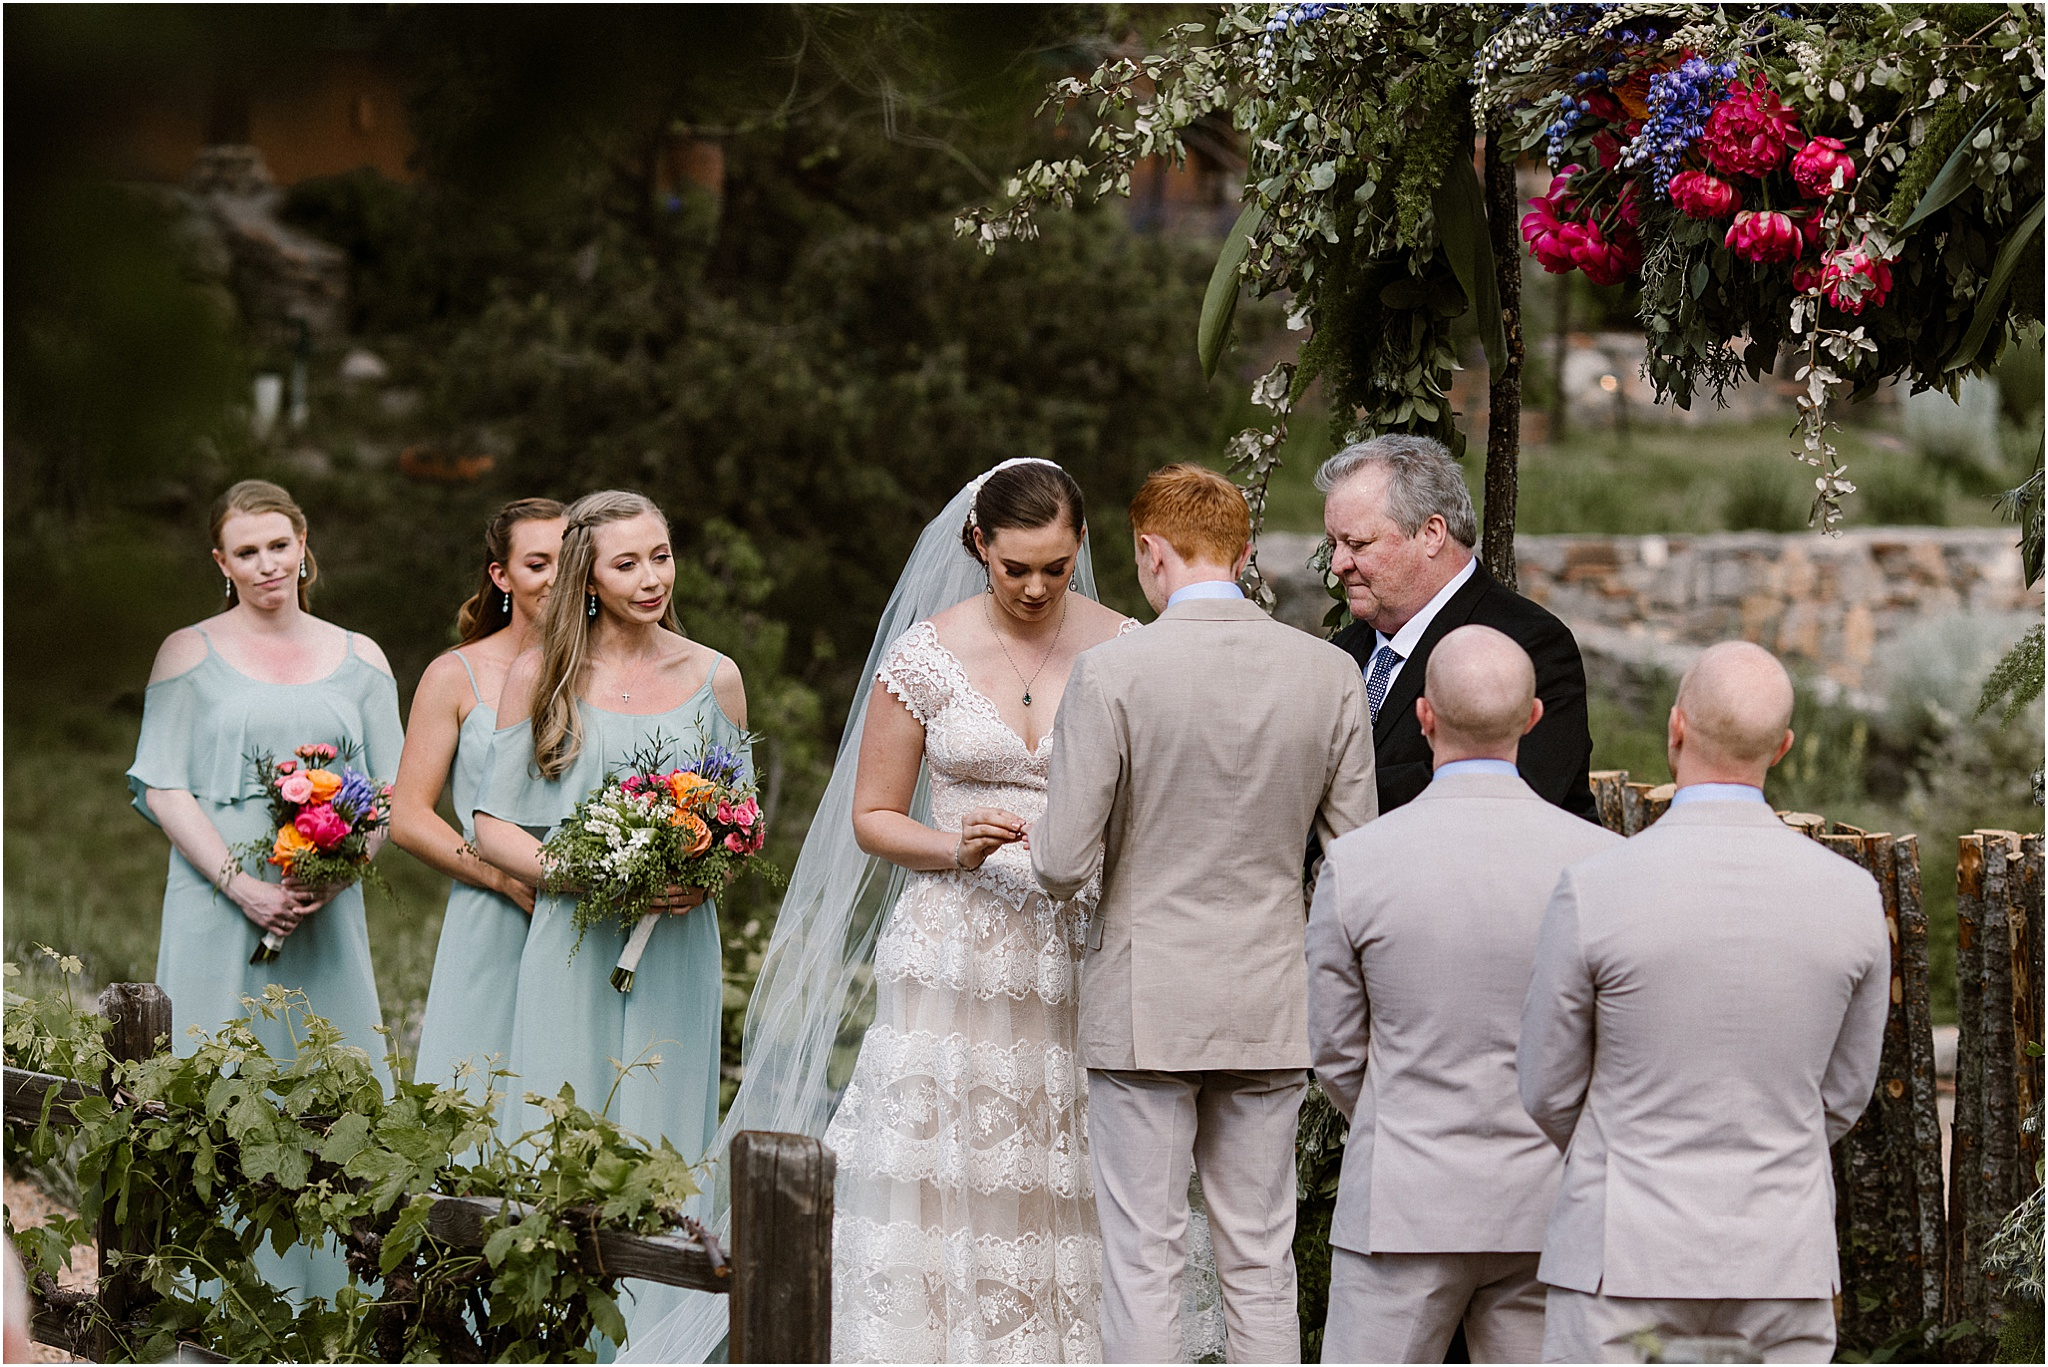 AMELIA_JASON_SANTA FE_ WEDDING_BLUE ROSE PHOTOGRAPHY62